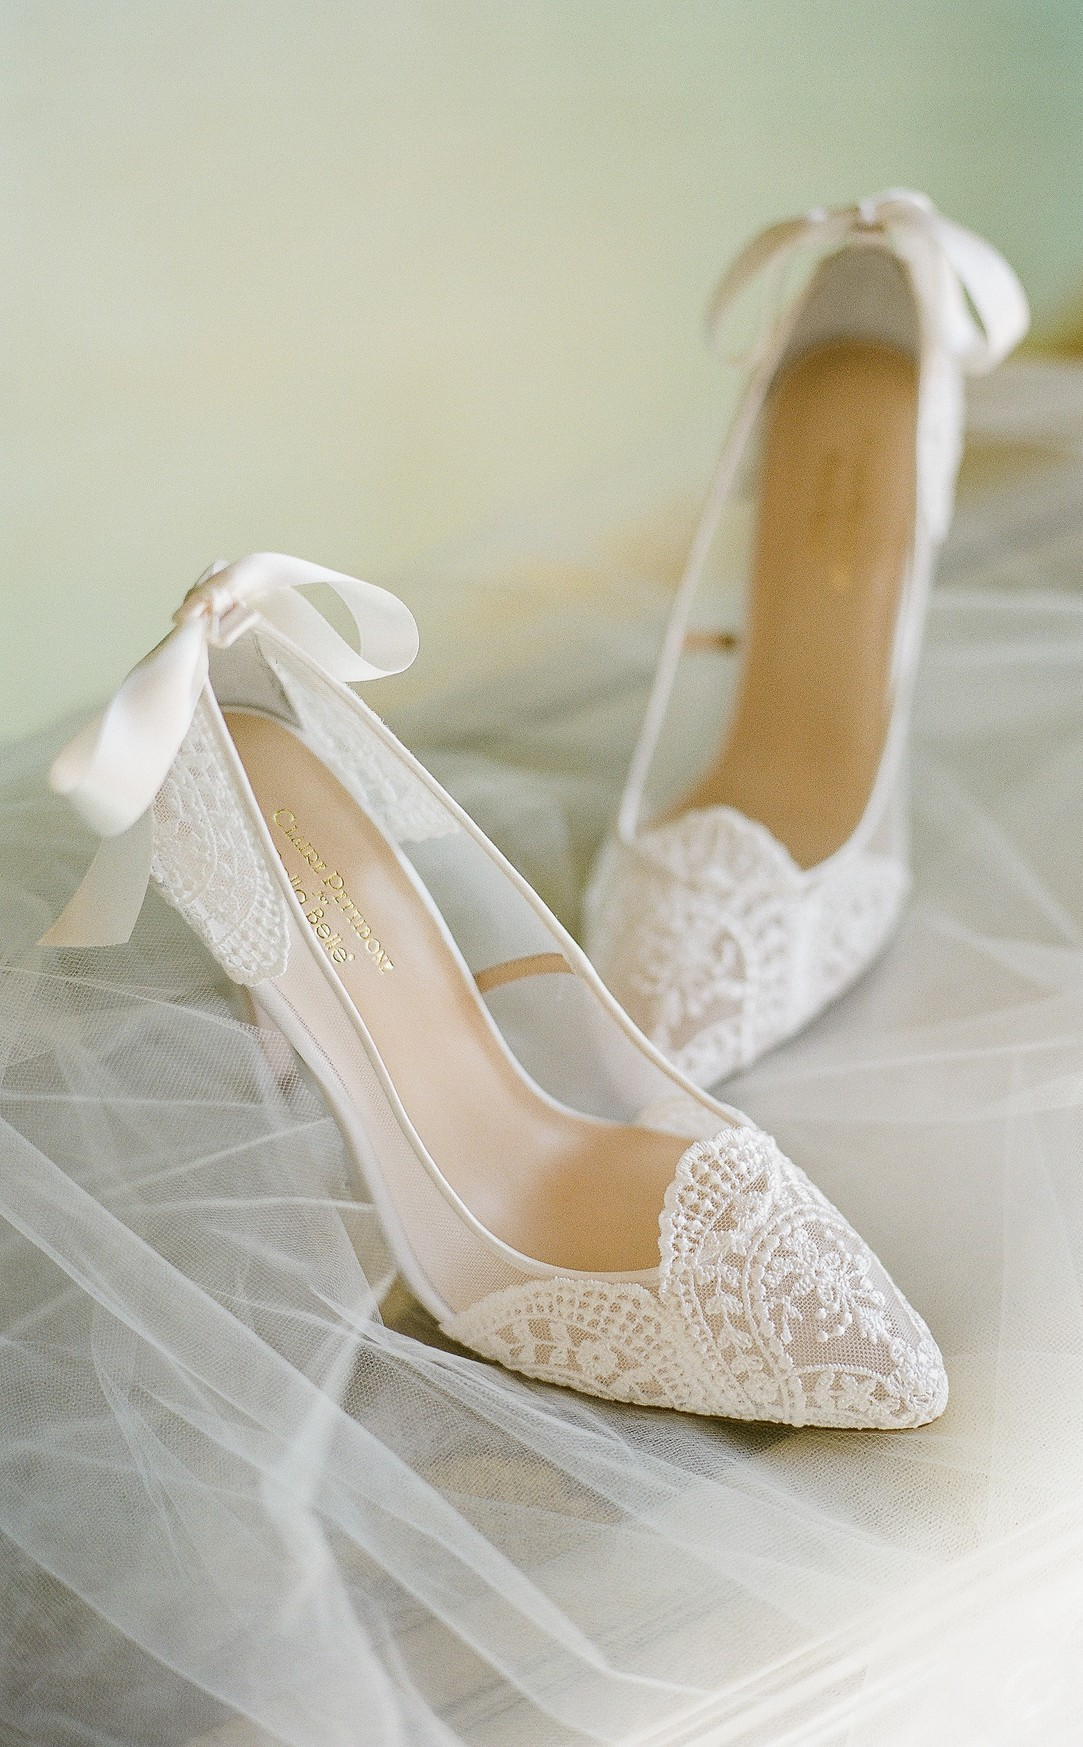 Claire Pettibone For Bella Belle Giselle Ivory Lace Wedding Shoes With Embroidered Tulle Silk Stil Summer Wedding Shoes Wedding Shoes Heels Wedding Shoes Lace